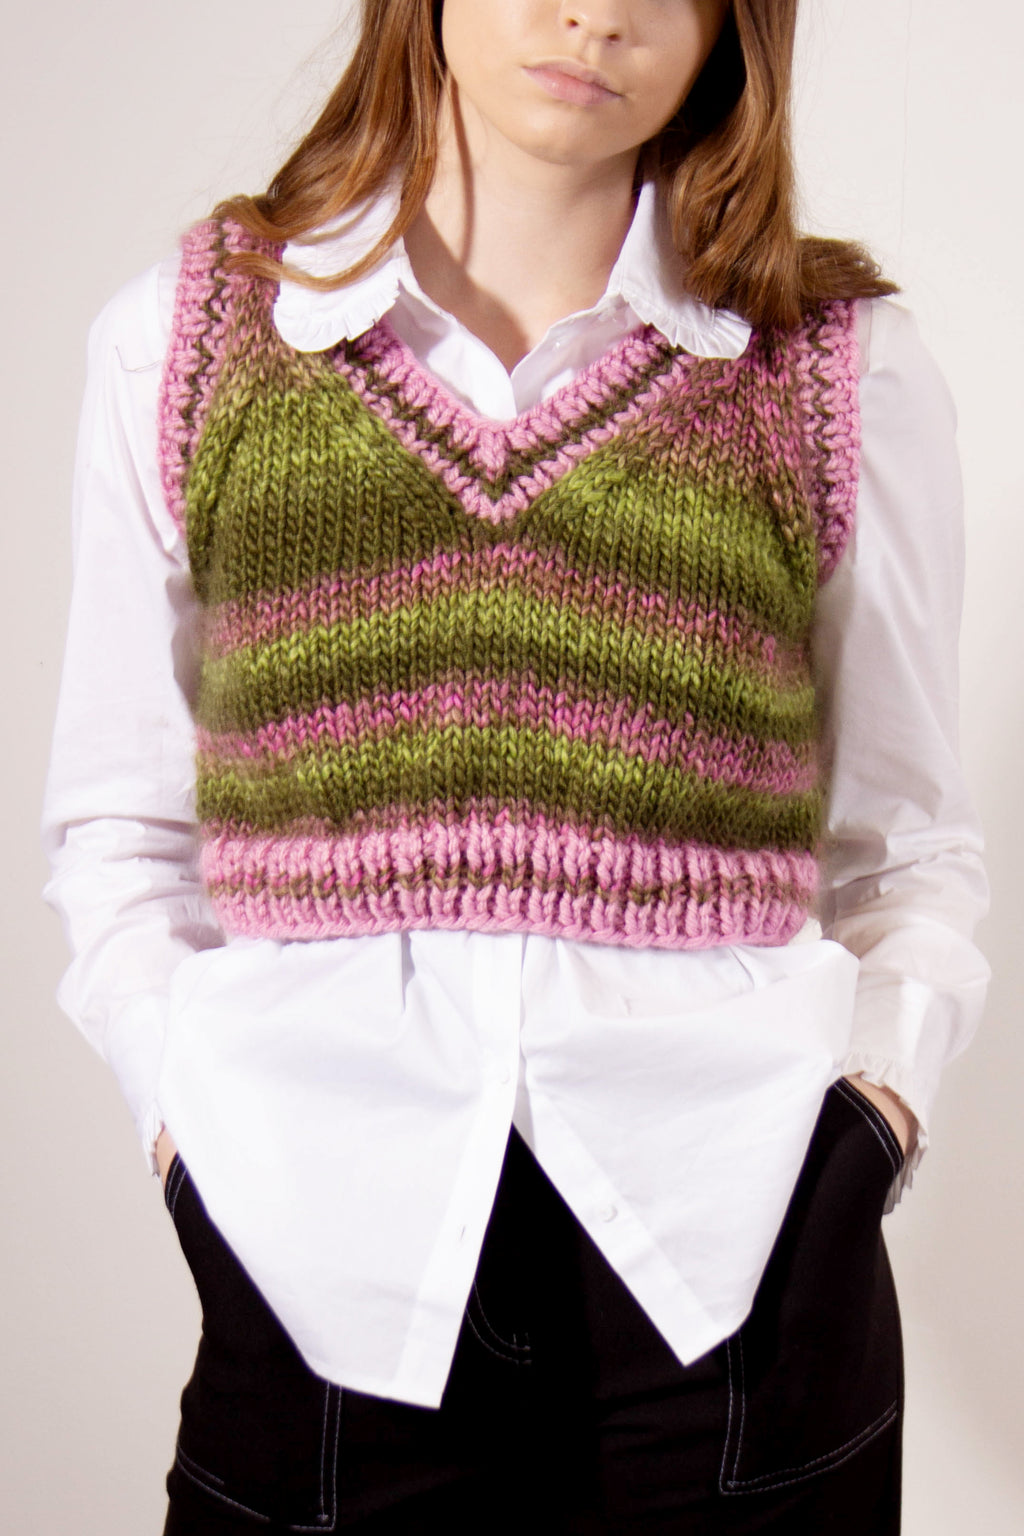 The Lily Hand Knit Cricket Jumper Studio Courtenay